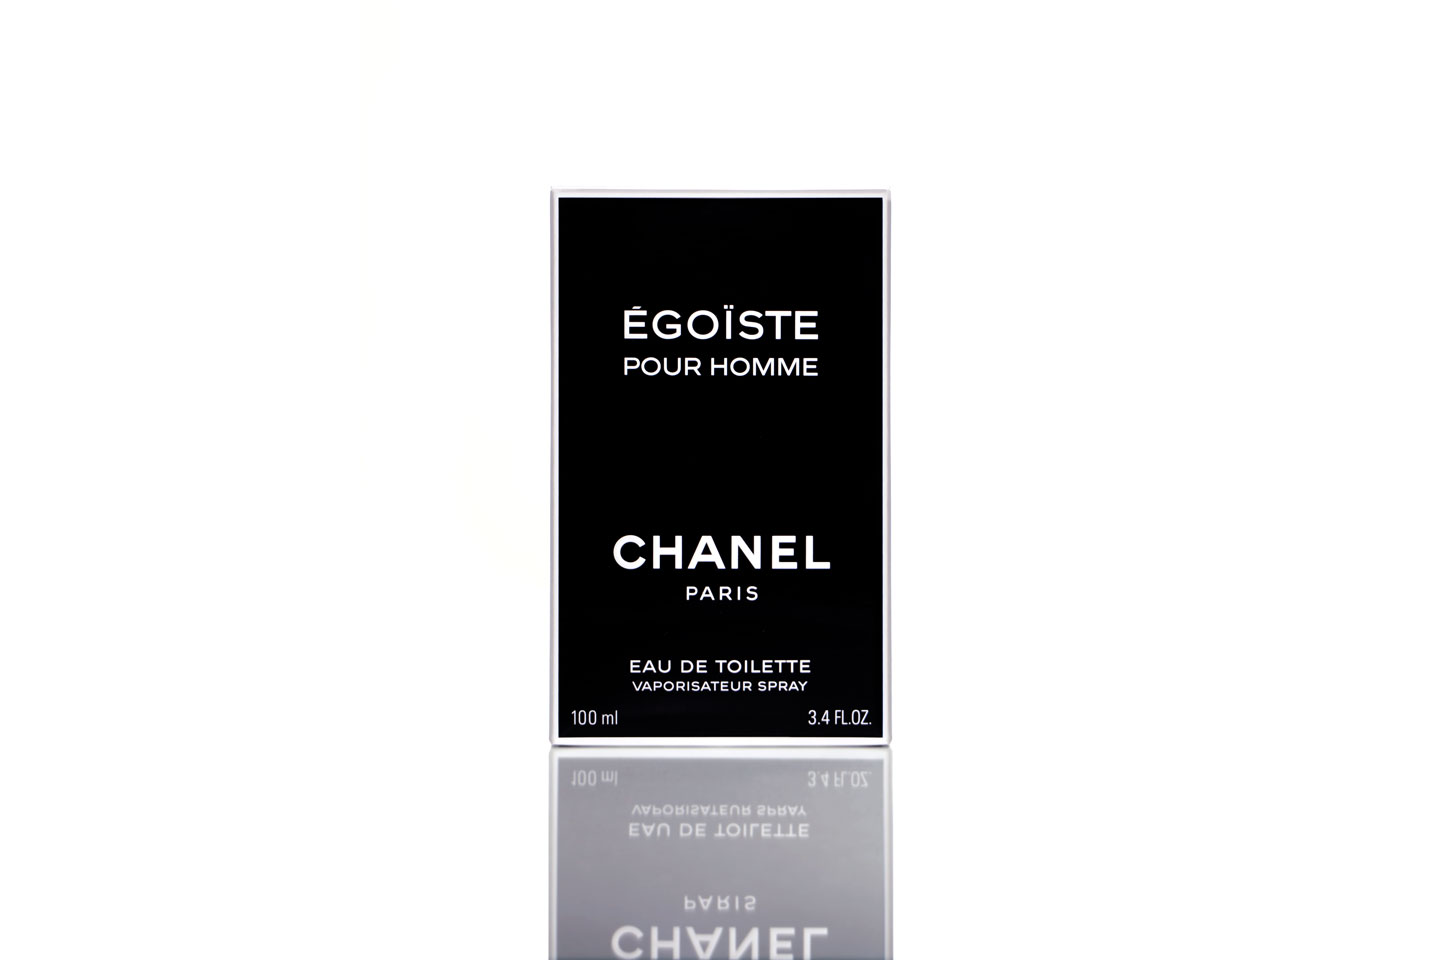 French Photographer Paris Studio Packshot Packaging Égoiste Chanel